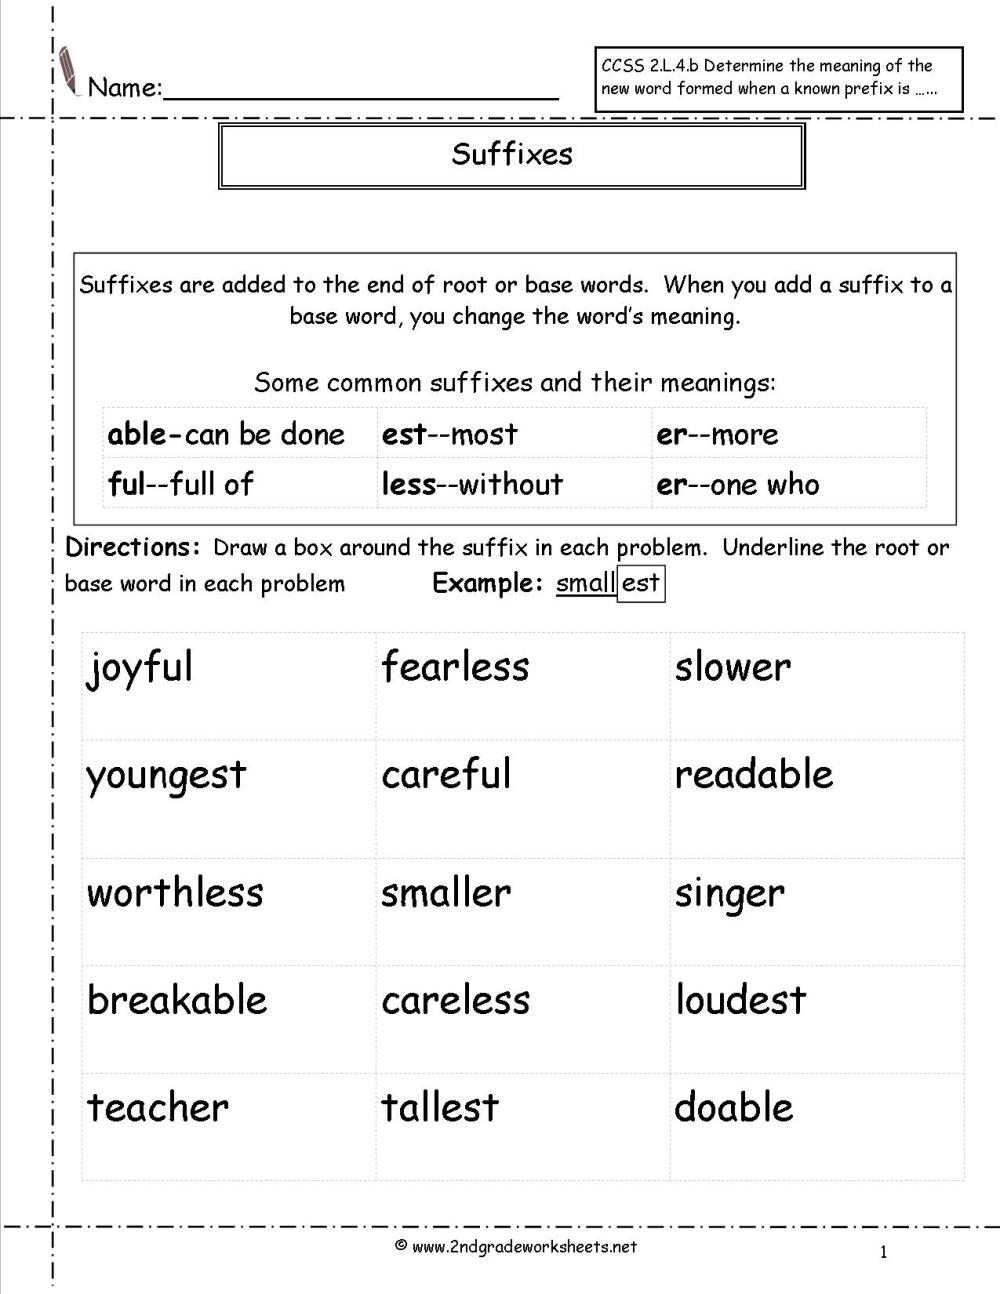 medium resolution of Re Prefix Worksheets 5th Grade   Printable Worksheets and Activities for  Teachers